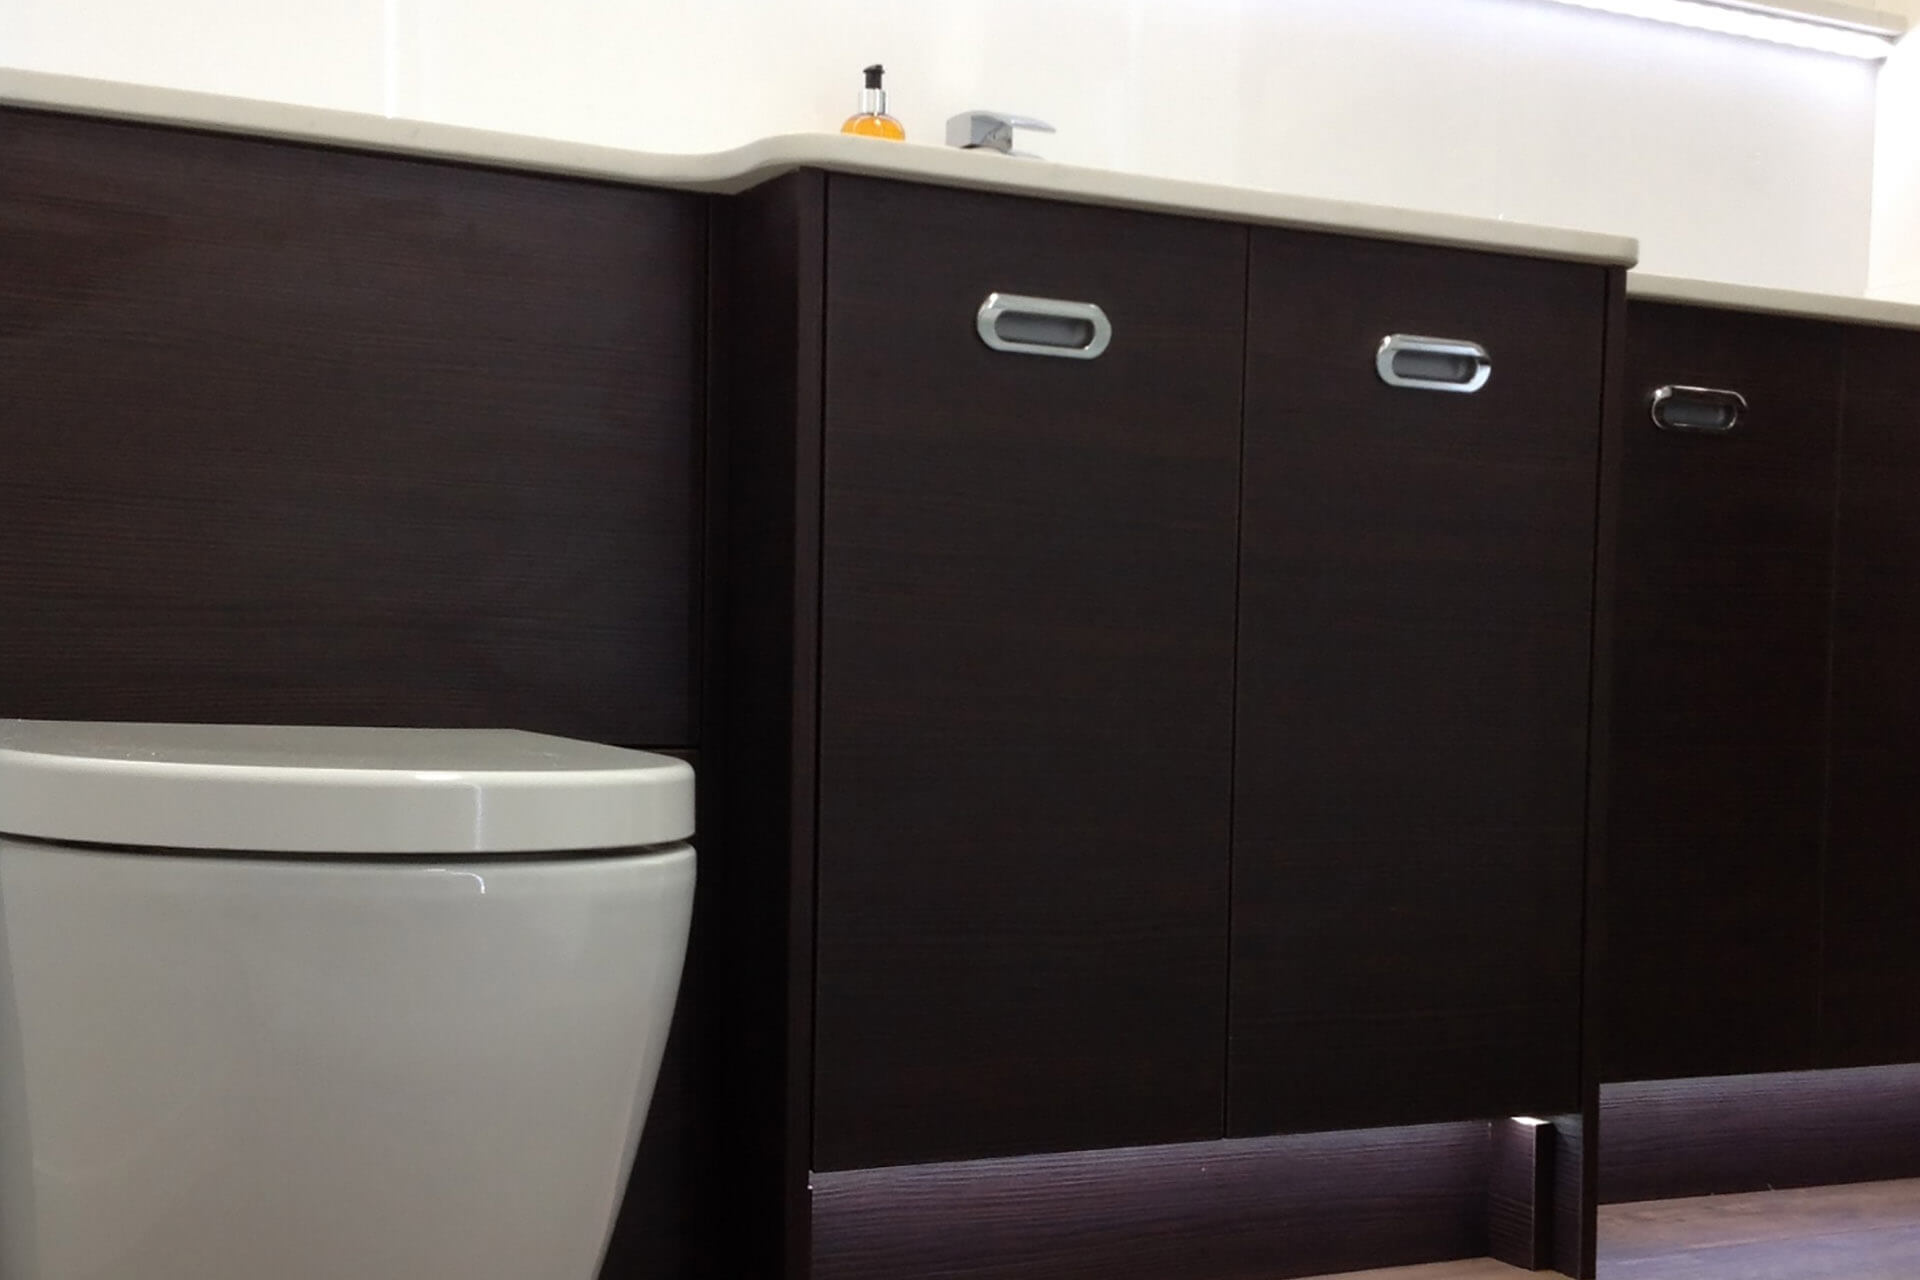 Dark doors and toilet unit